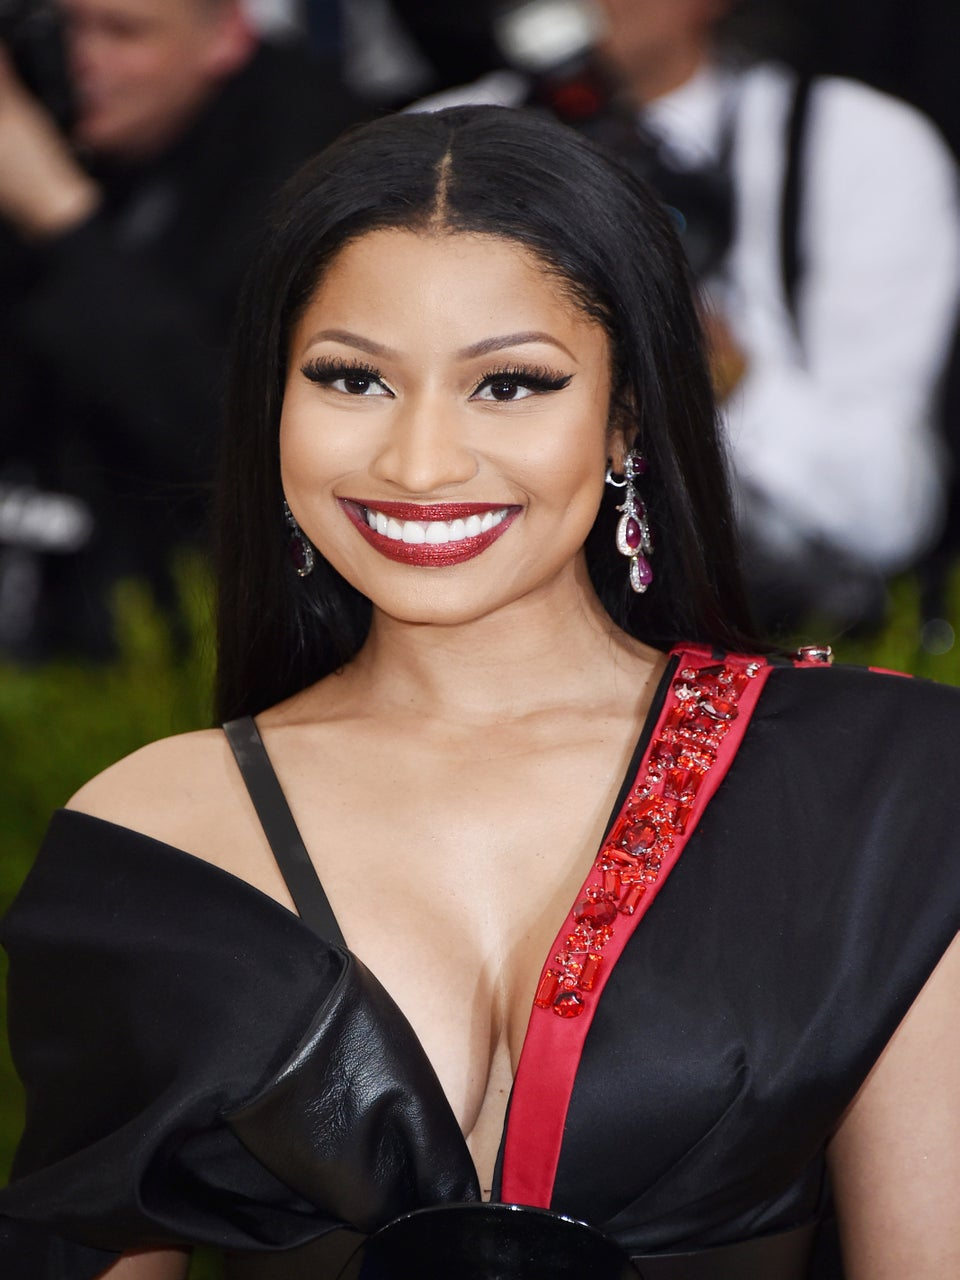 Nicki Minaj To Launch Charity To Help With Student Loans